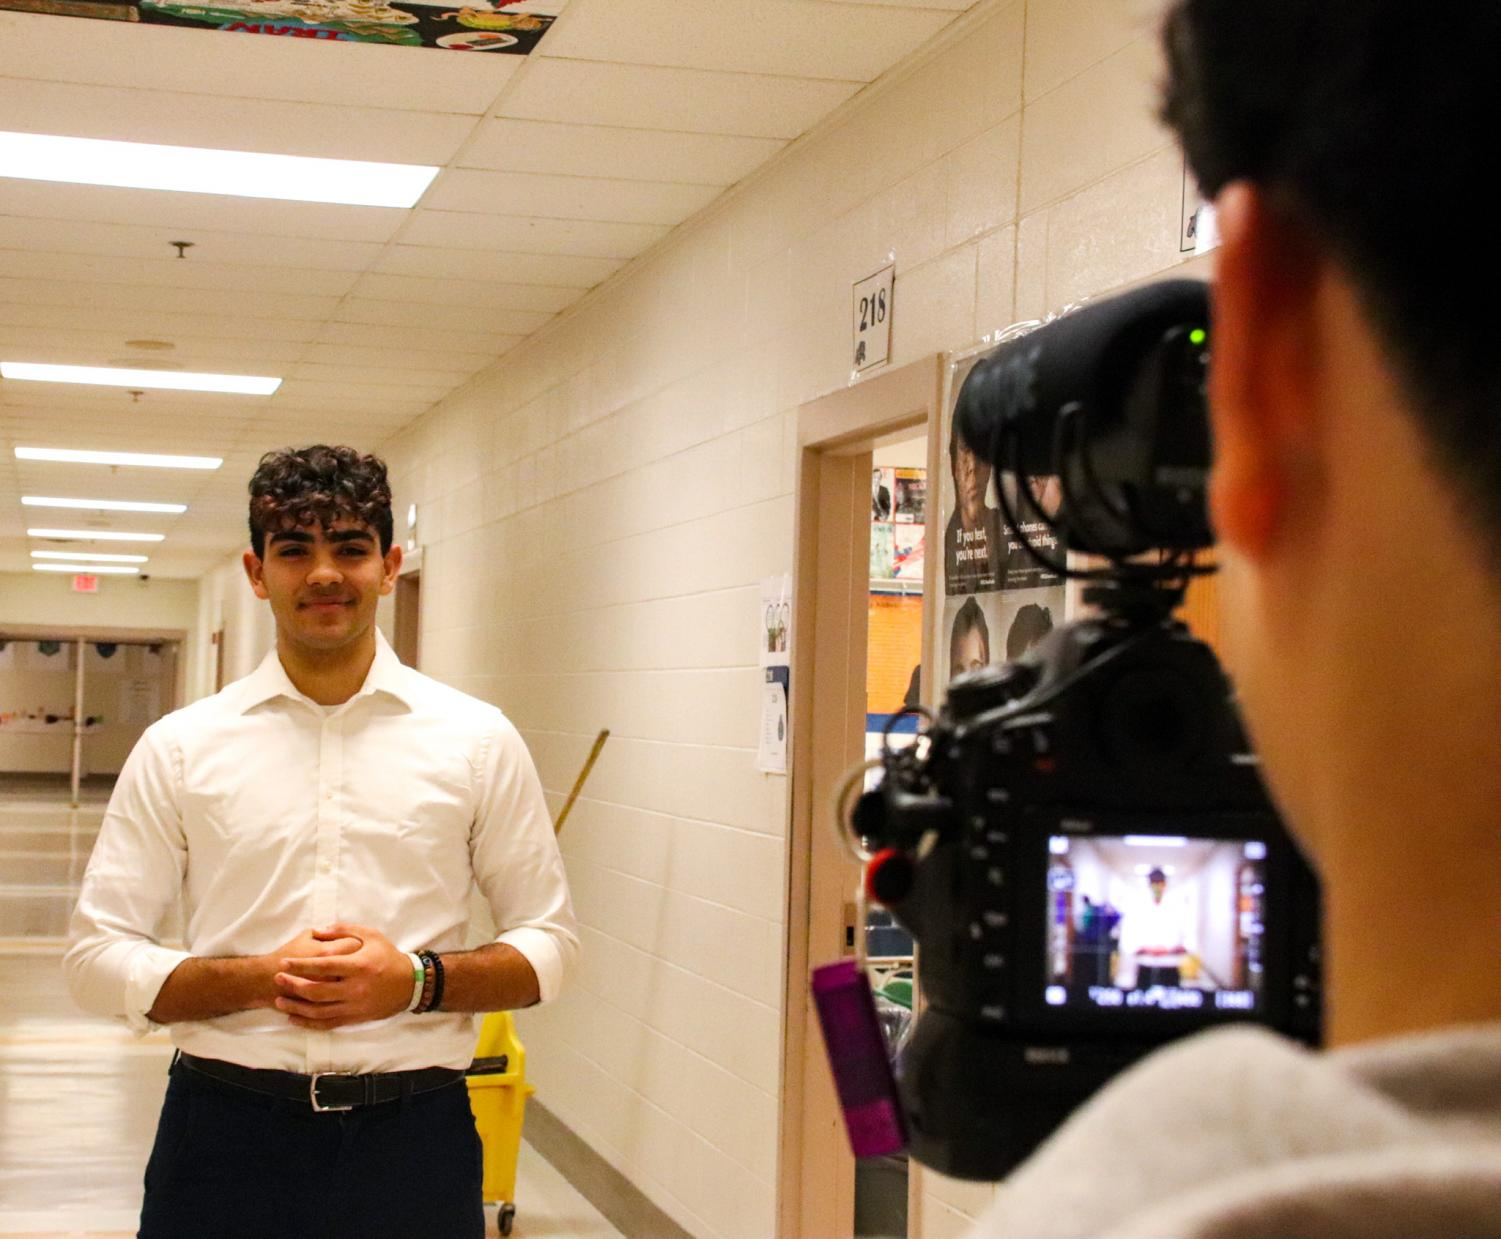 WCHS President Jay Wood preparing to speak for his SMOB announcement video in the halls of WCHS.